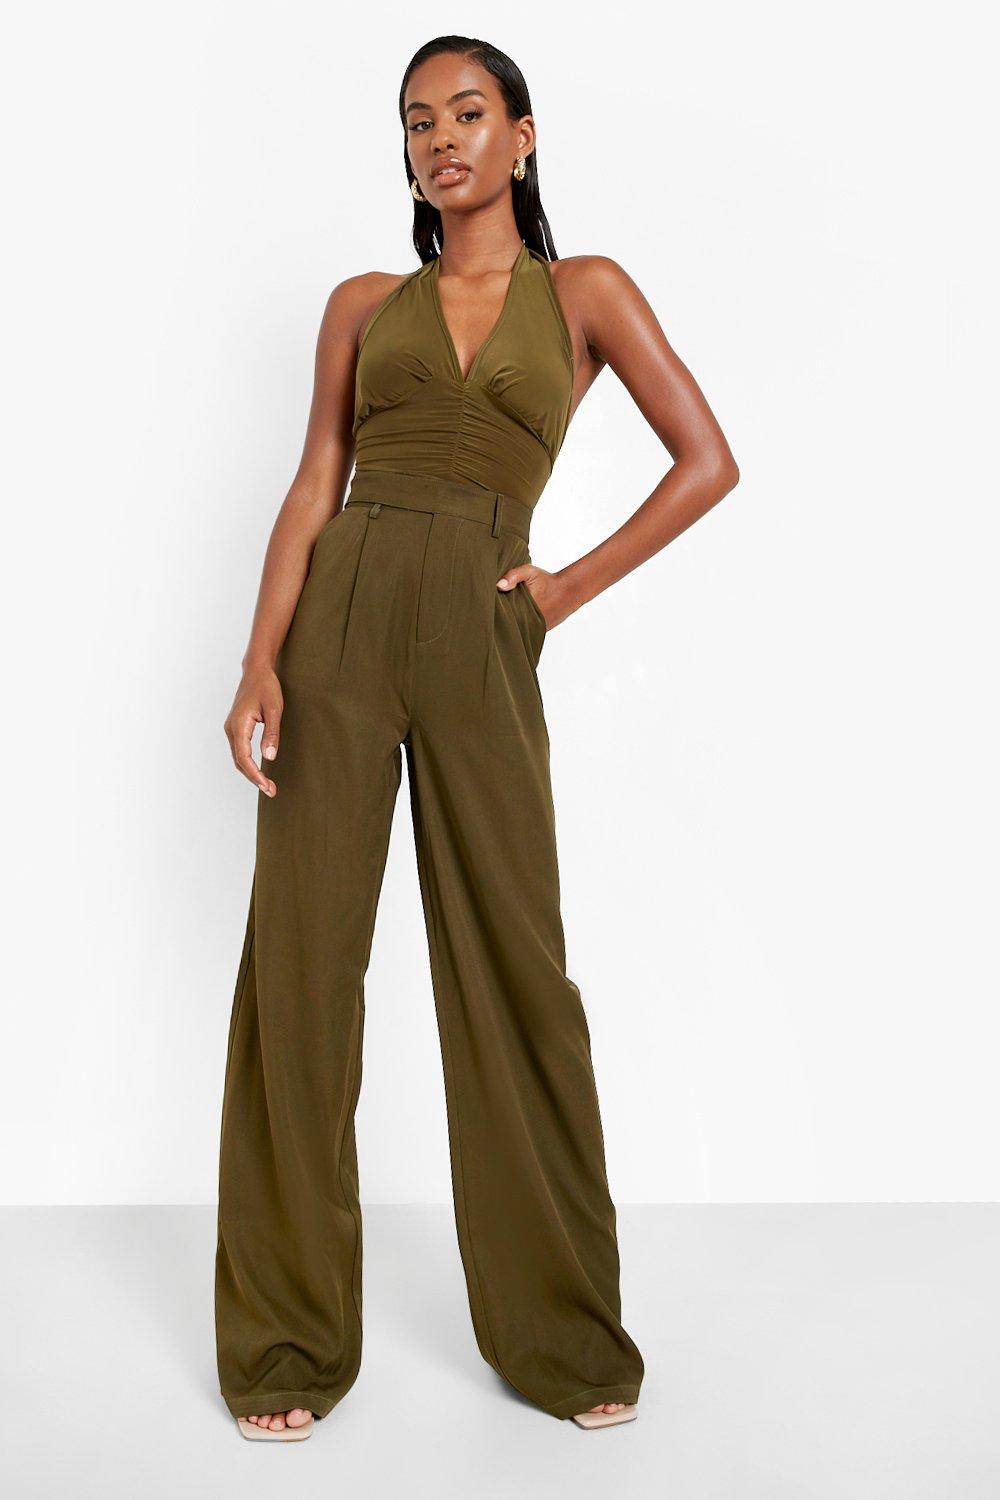 60s Pants, Jeans, Hippie, Flares, Jumpsuits Womens Straight Leg Slouchy Woven Trouser - Green - 12 $22.00 AT vintagedancer.com